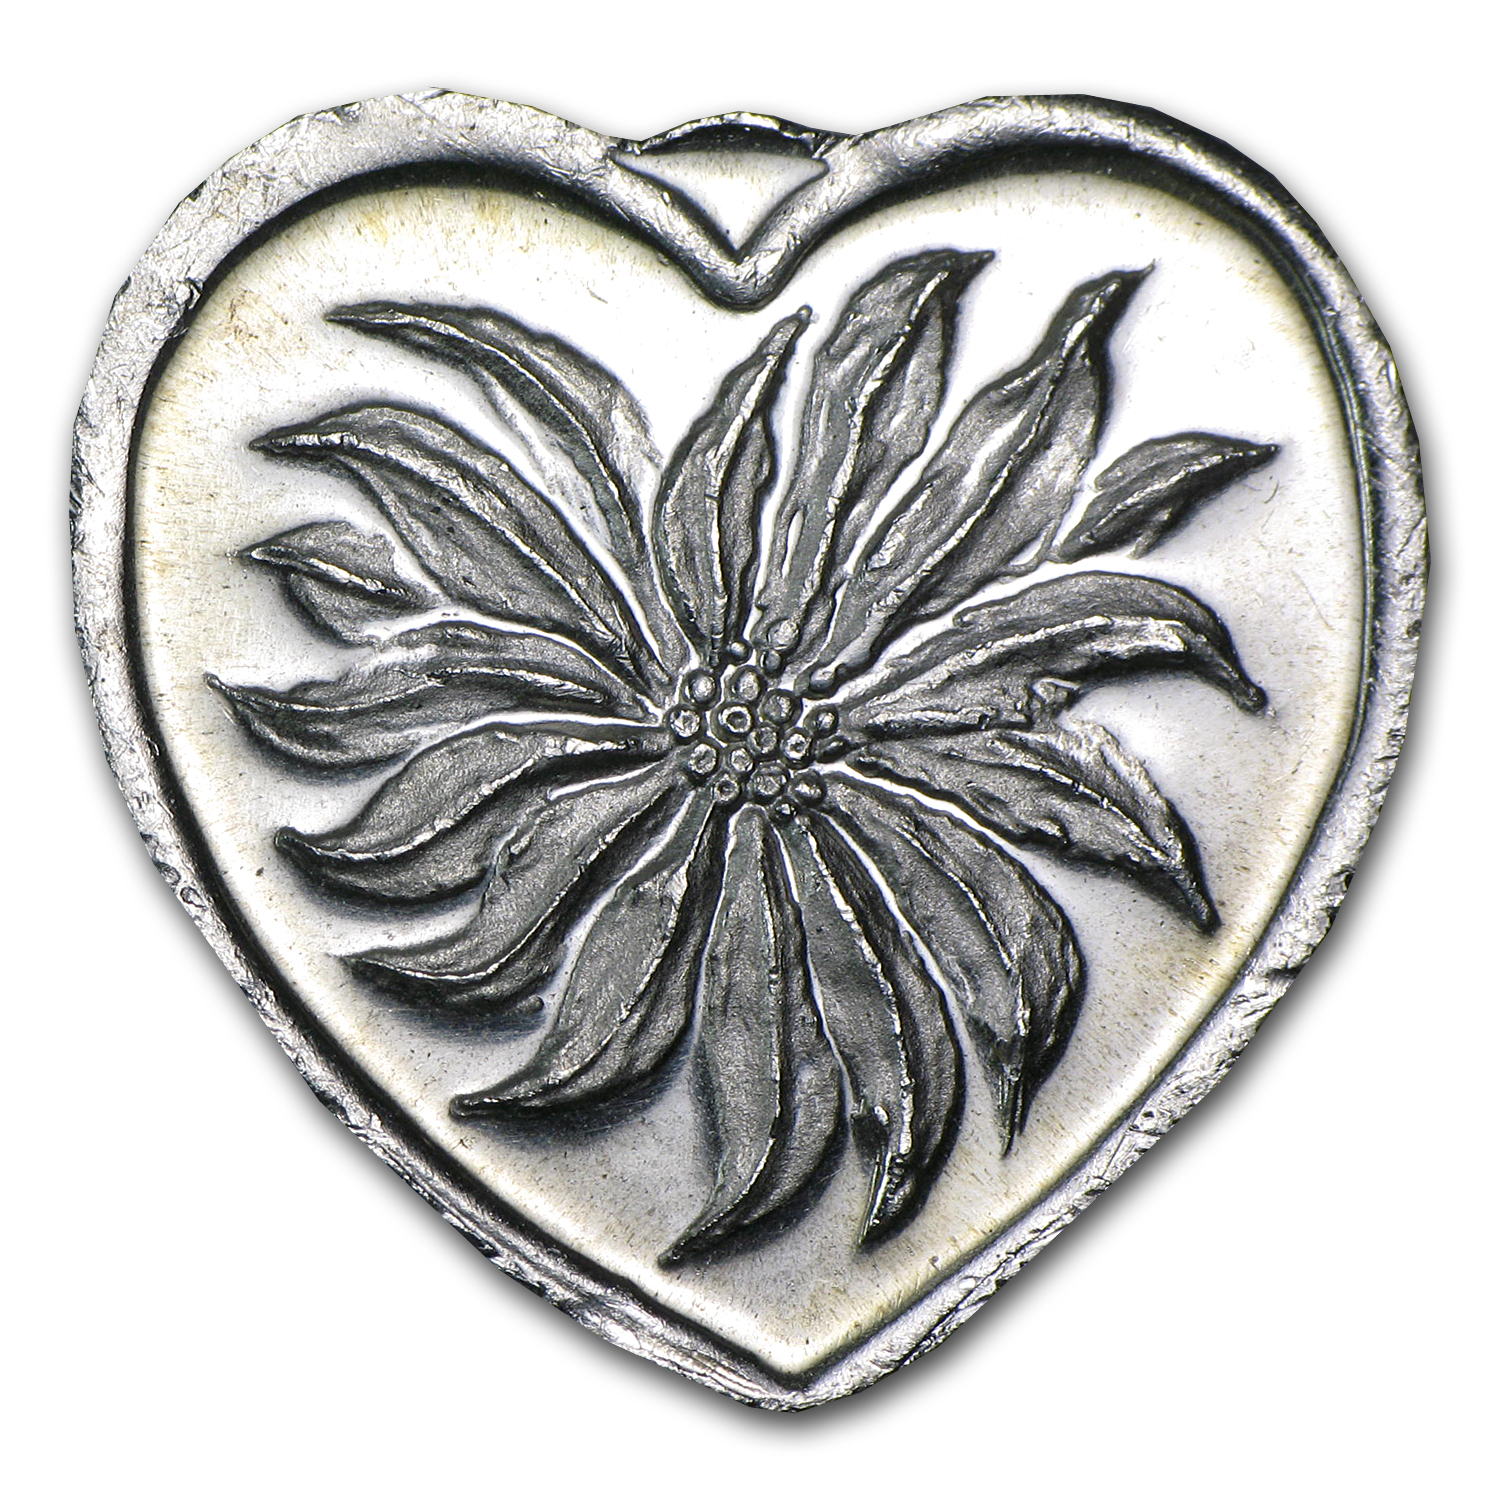 1/4 oz Silver Heart - Poinsettia